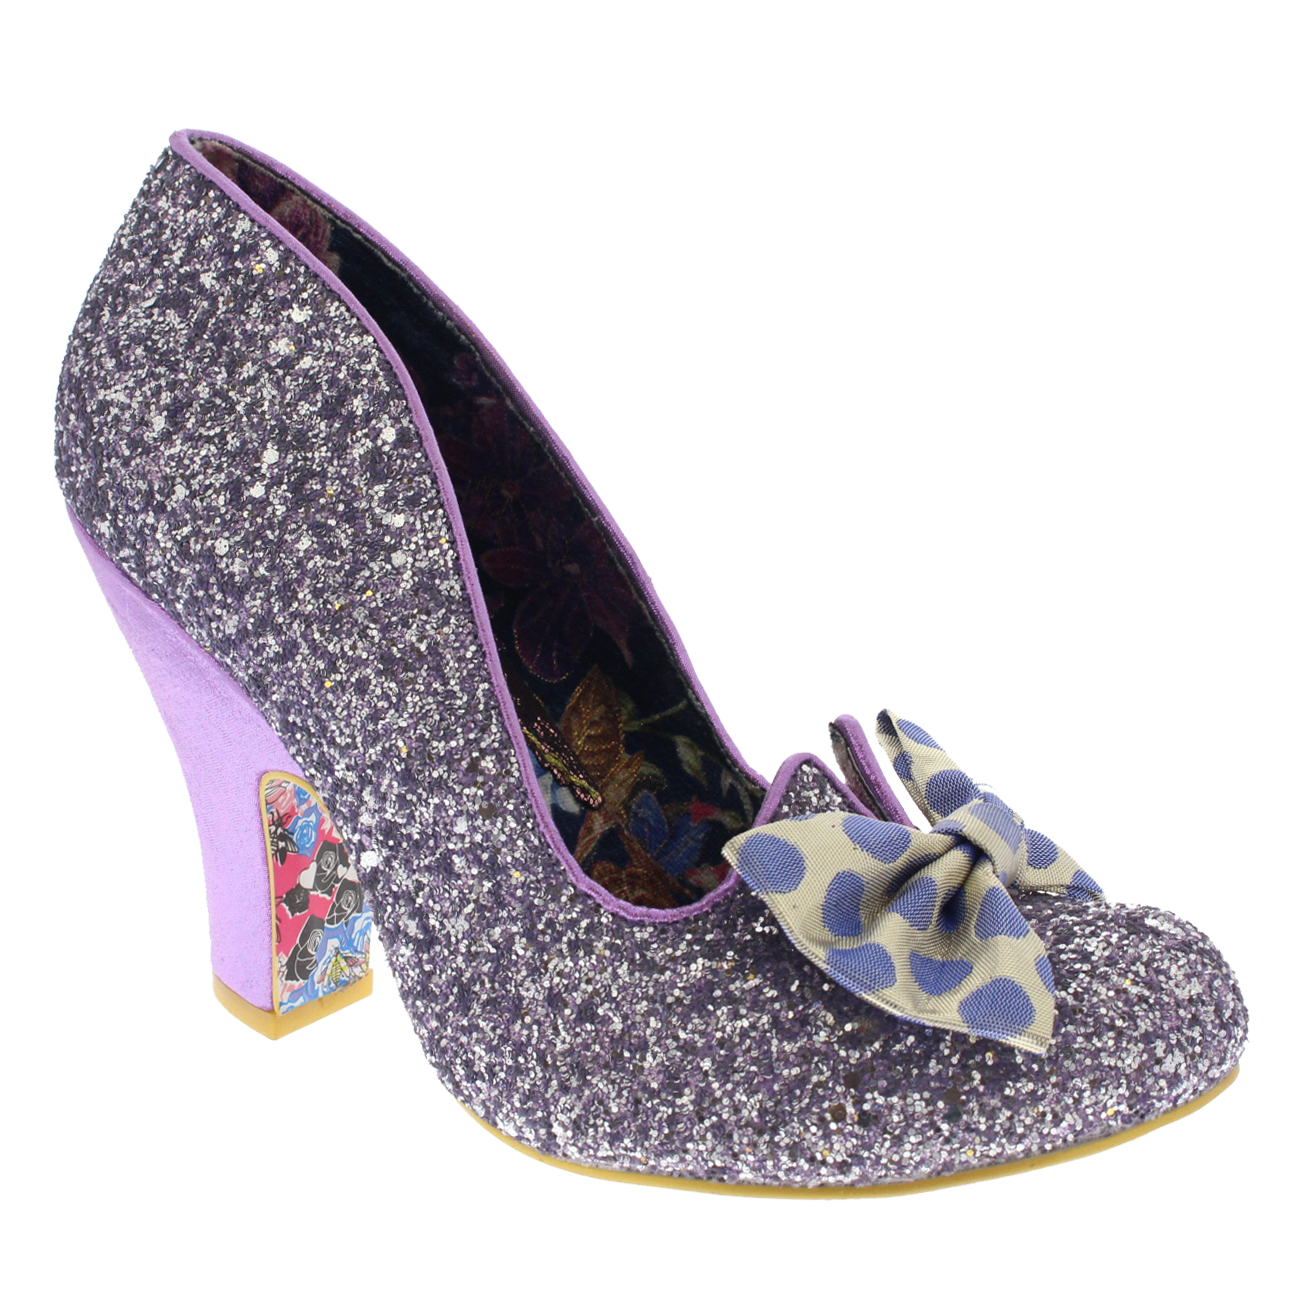 c1fd8dc4f48 Details about Womens Irregular Choice Nick Of Time Bow Mid Heel Glitter  Court Shoes UK 3.5-8.5